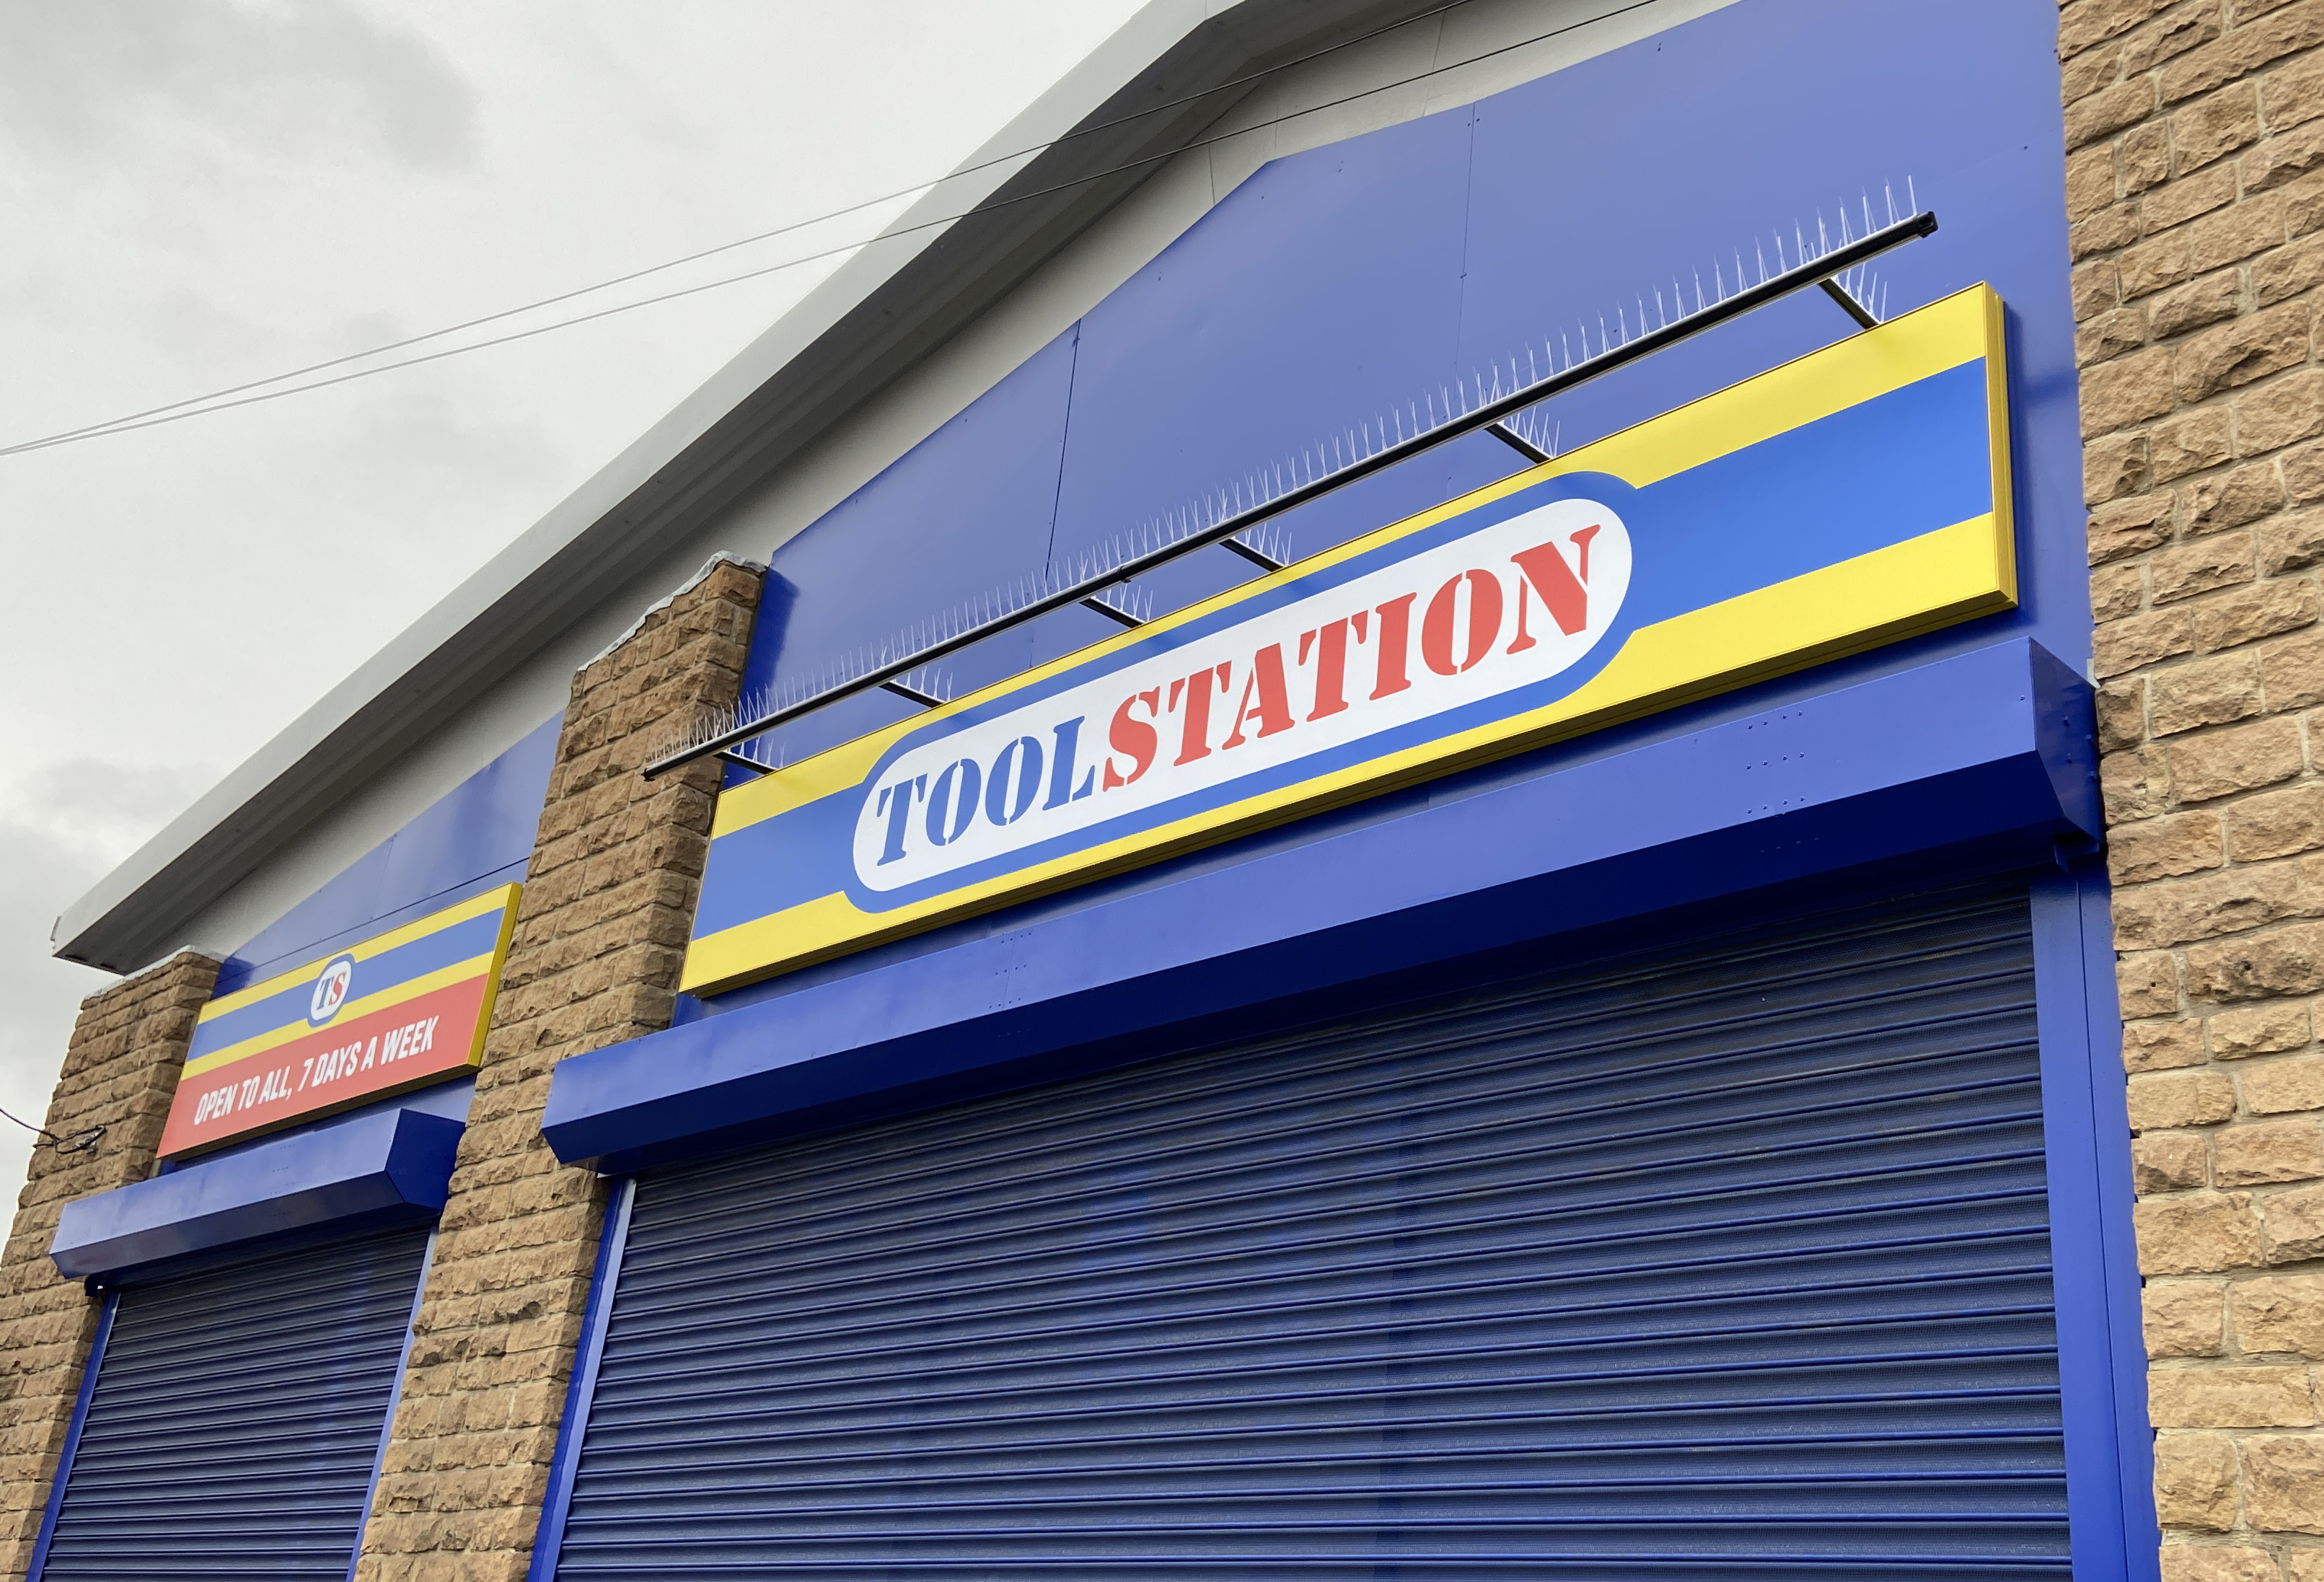 Toolstation shopfront signage